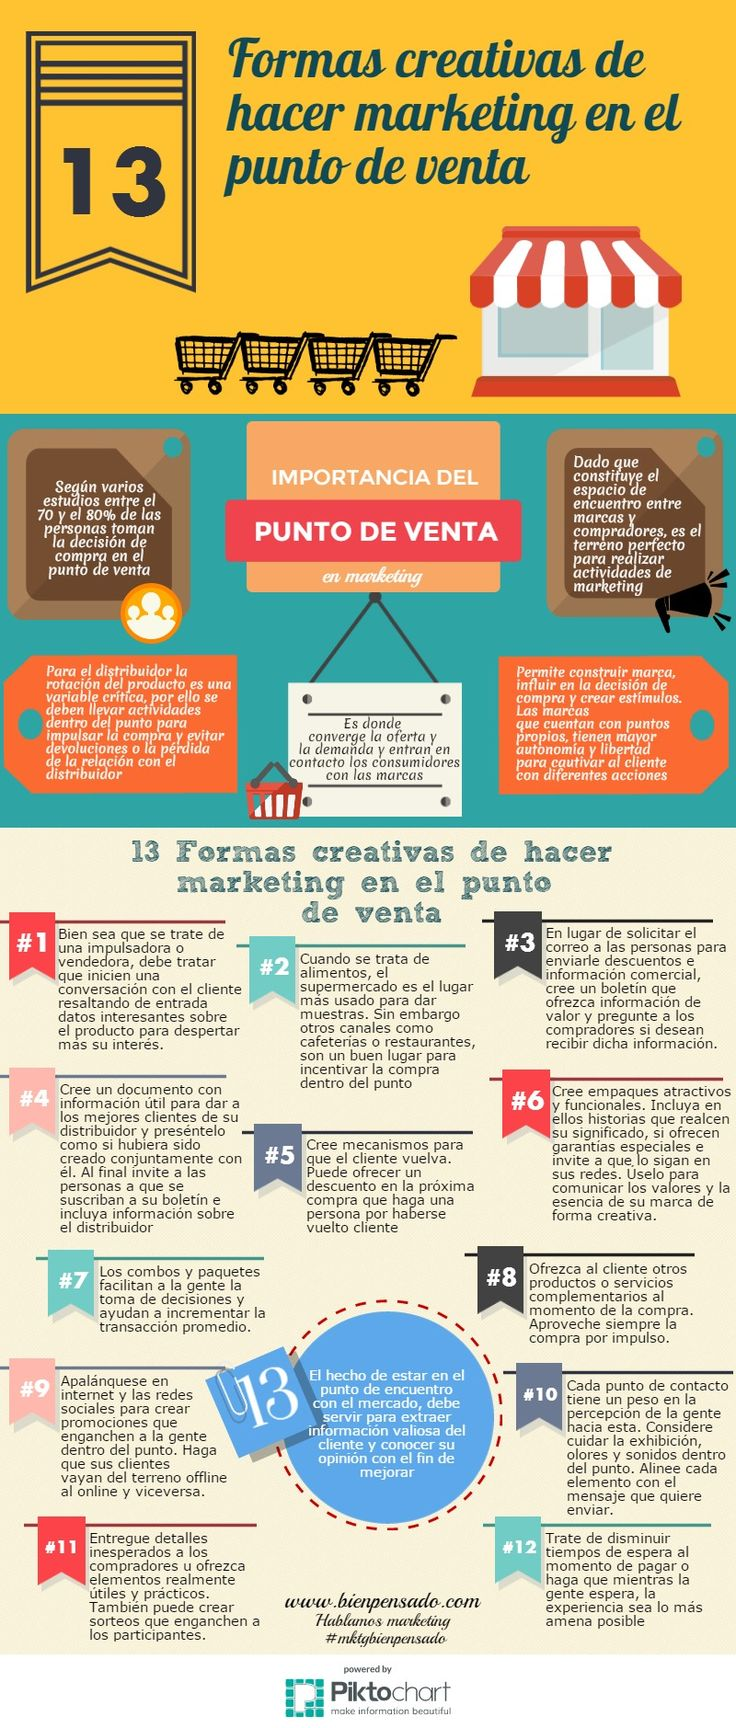 13 formas creativas de hacer marketing en el punto de venta | Piktochart Infographic Editor